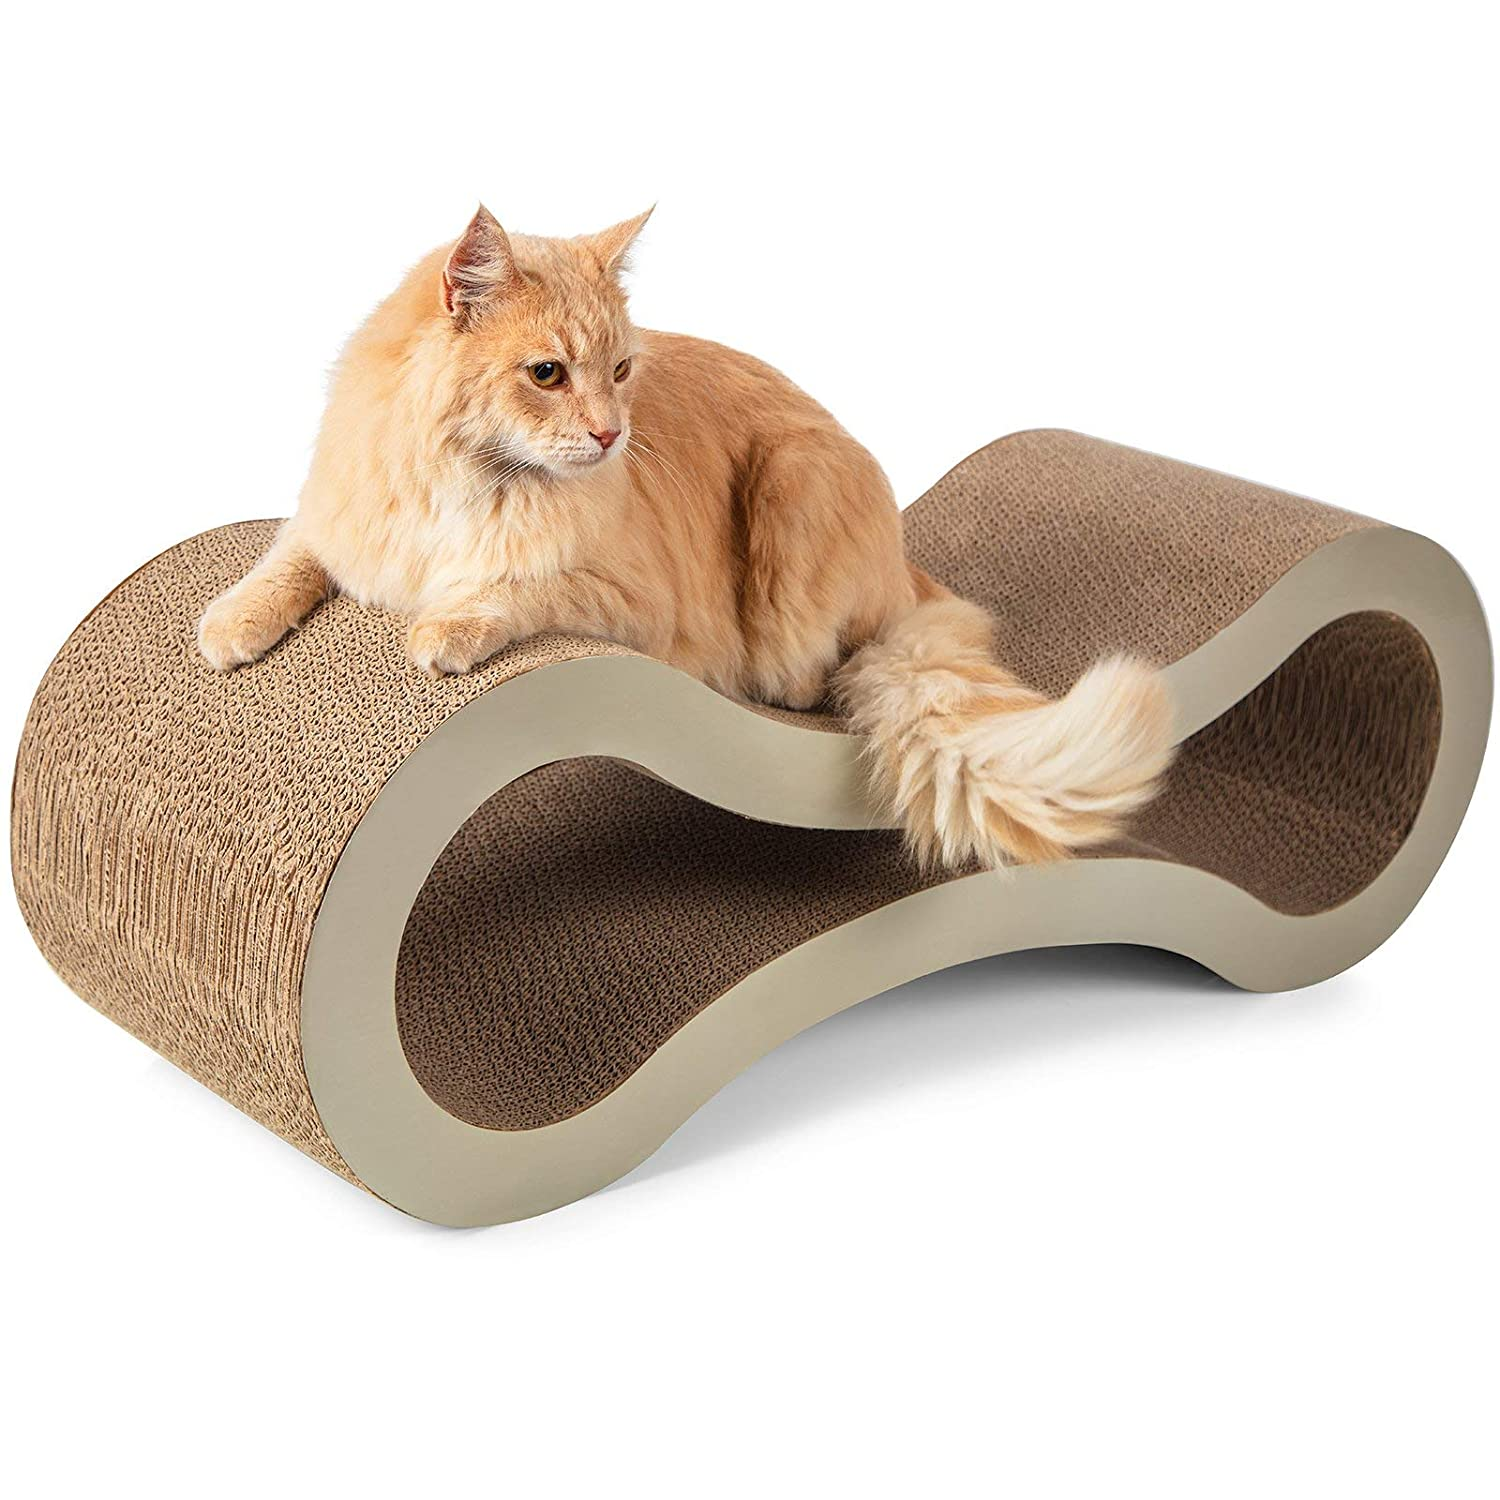 Beige Paws & Pals Cat Scratcher Lounge Post 32 x11 x11  Inches Cardboard Furniture Construction with Catnip